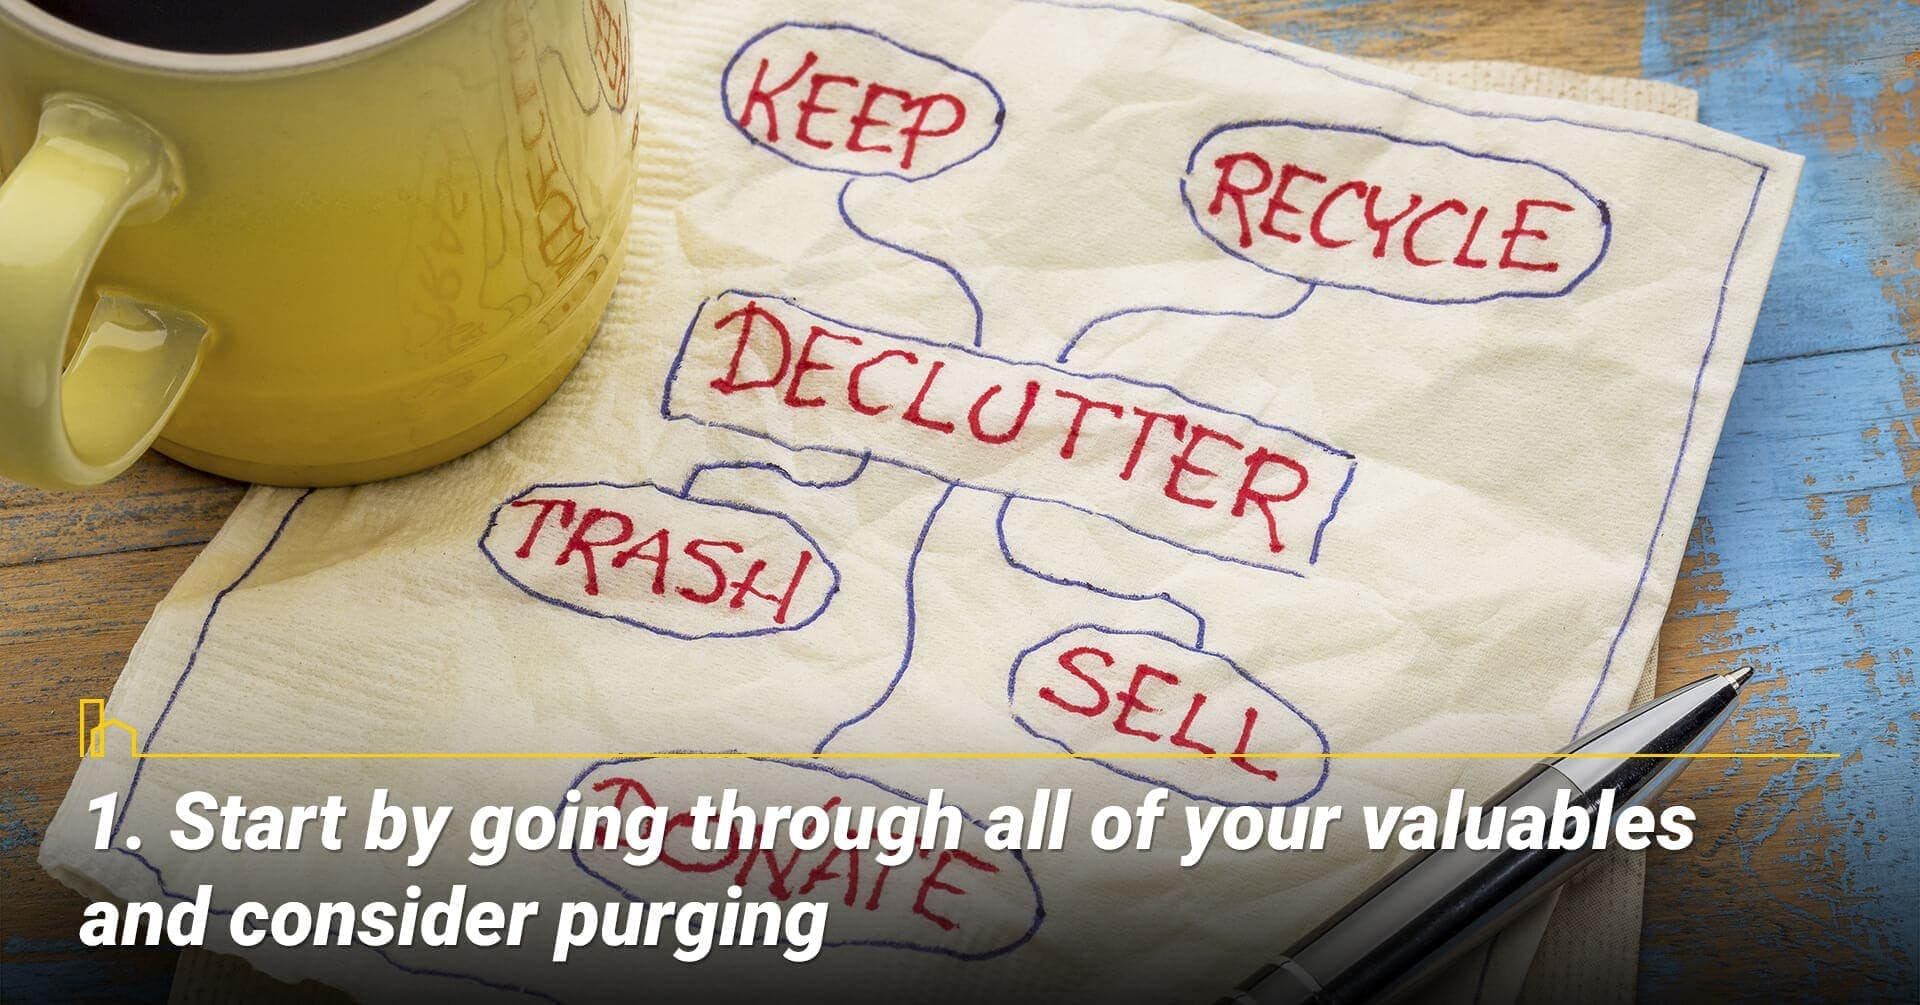 Start by going through all of your valuables and consider purging